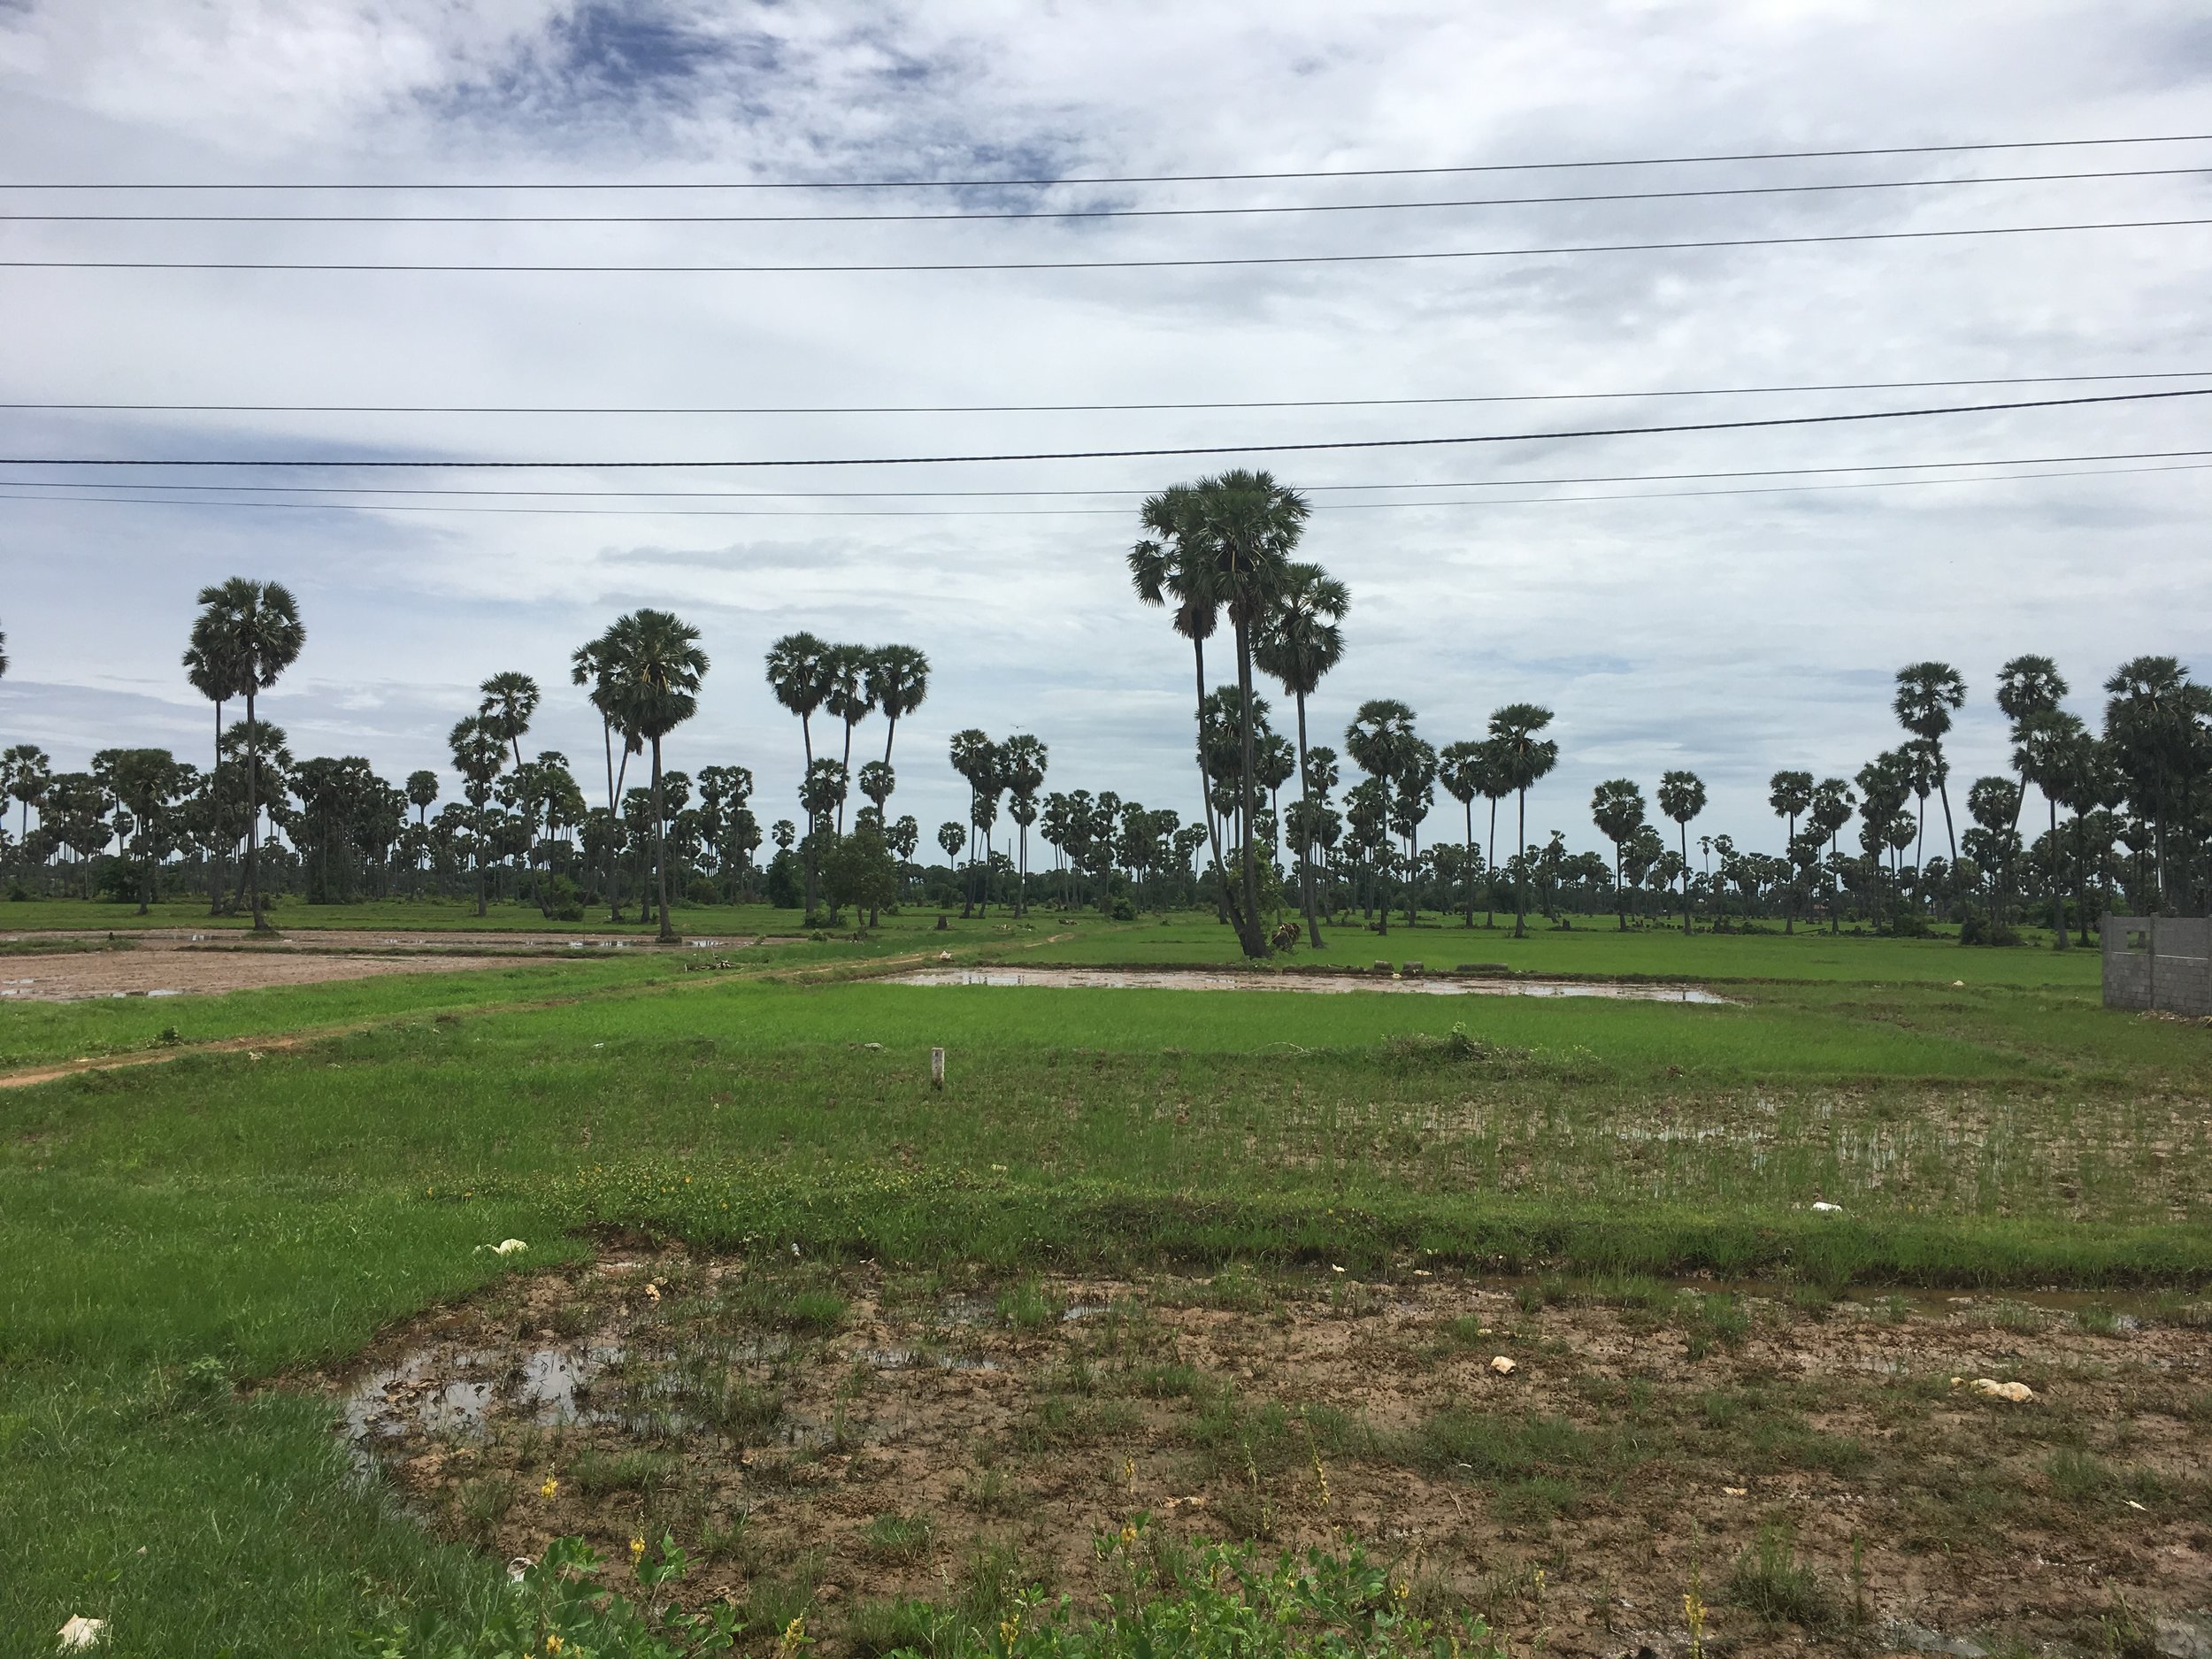 Cambodia really does feel like a Kingdom, with it's flat plains dotted with palm tress.